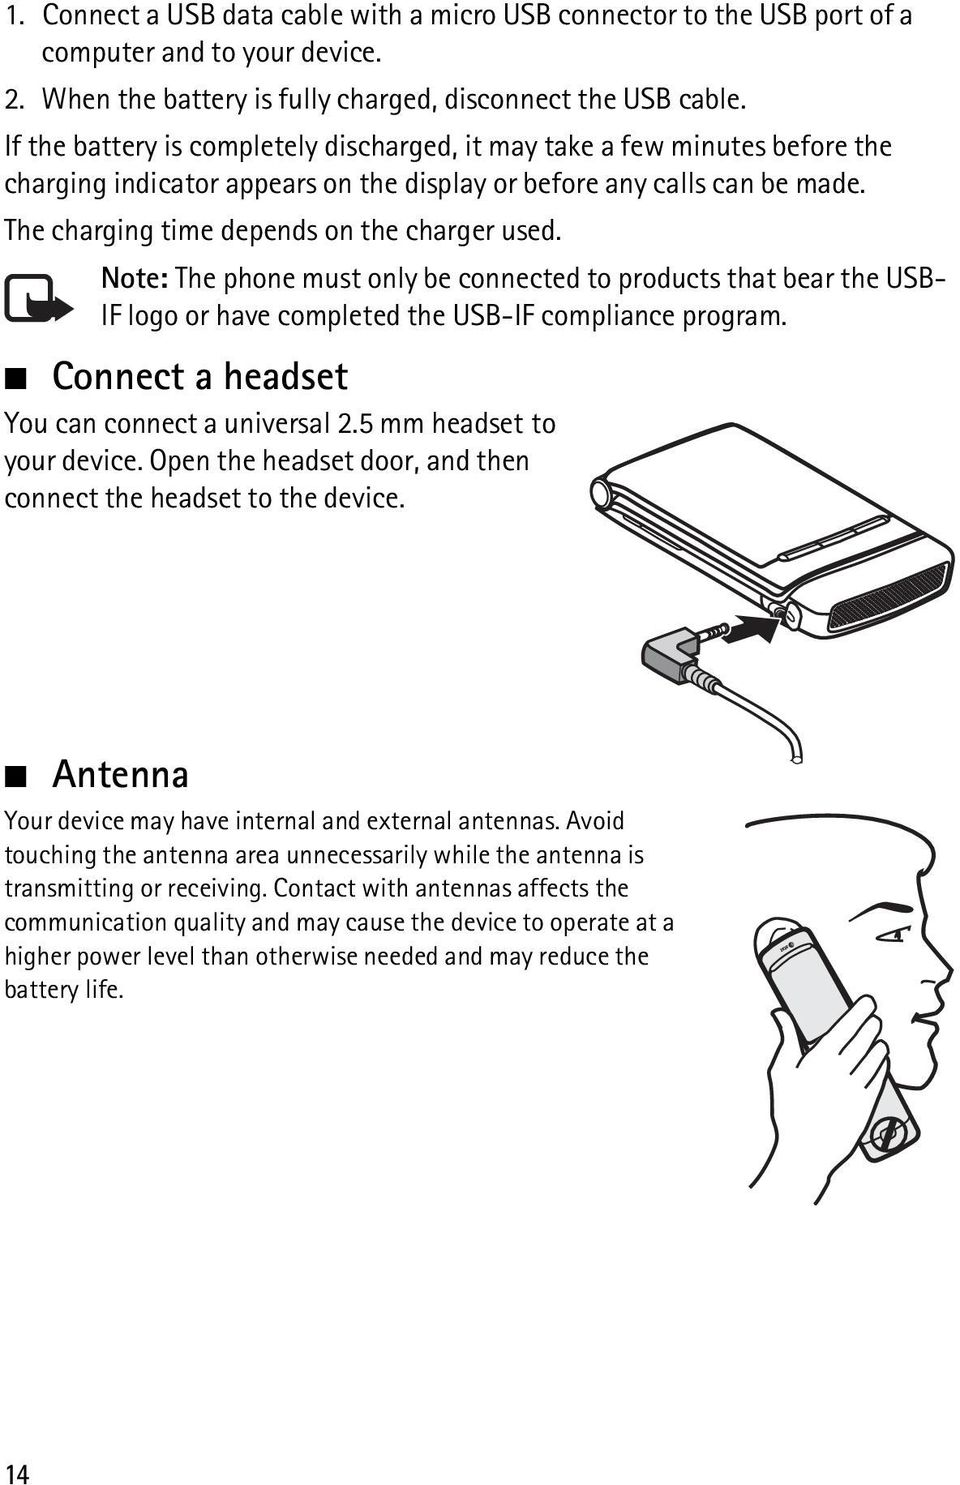 Note: The phone must only be connected to products that bear the USB- IF logo or have completed the USB-IF compliance program. Connect a headset You can connect a universal 2.